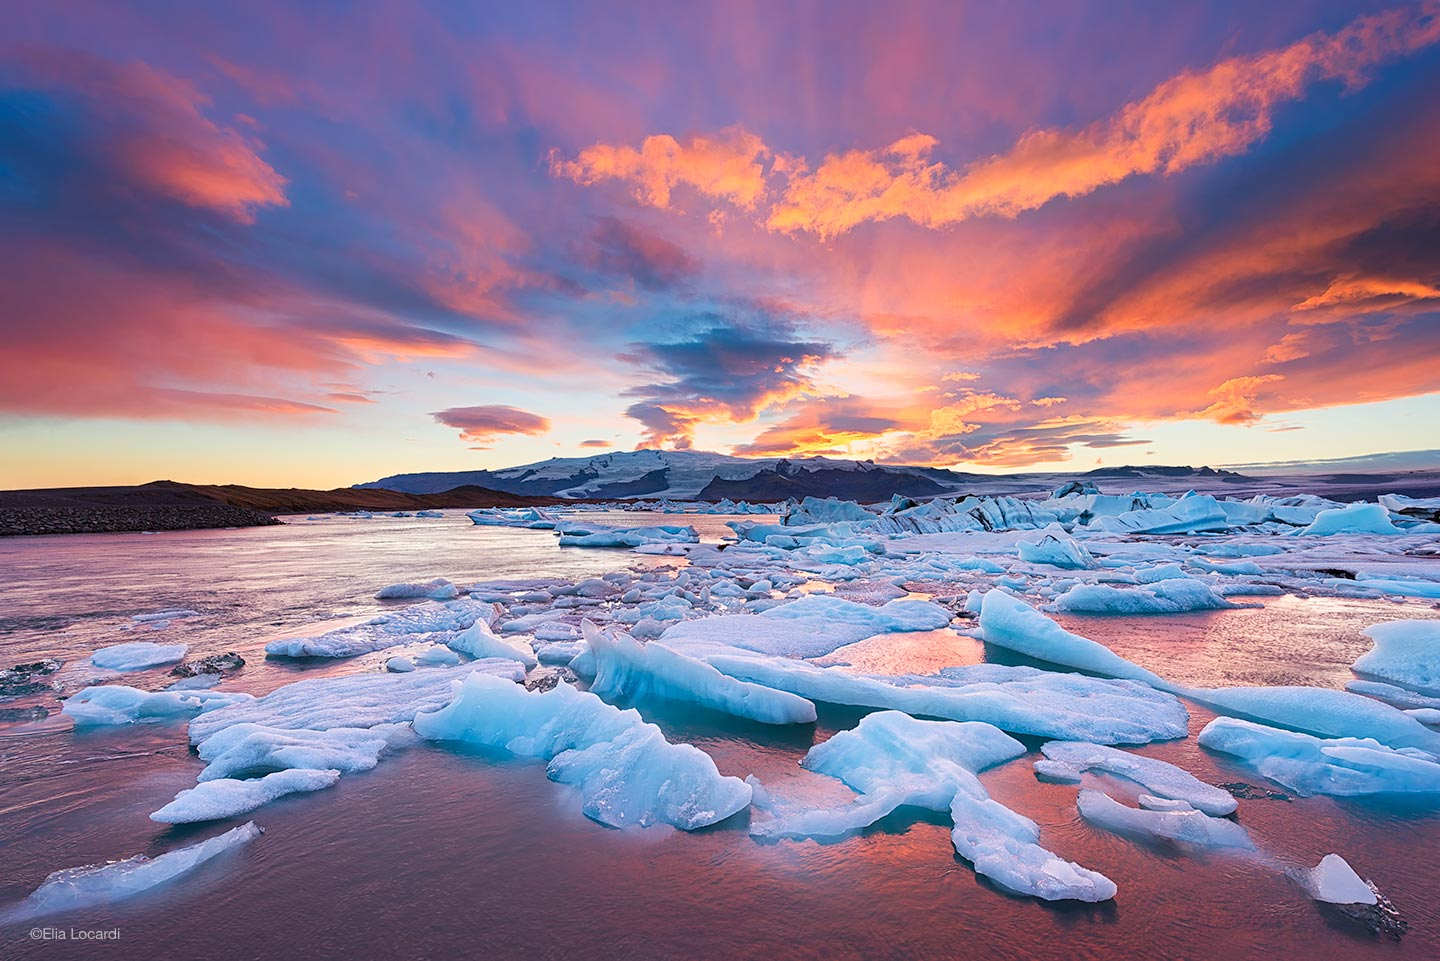 Elia-Locardi-Colors-of-Jokulsarlon-Iceland